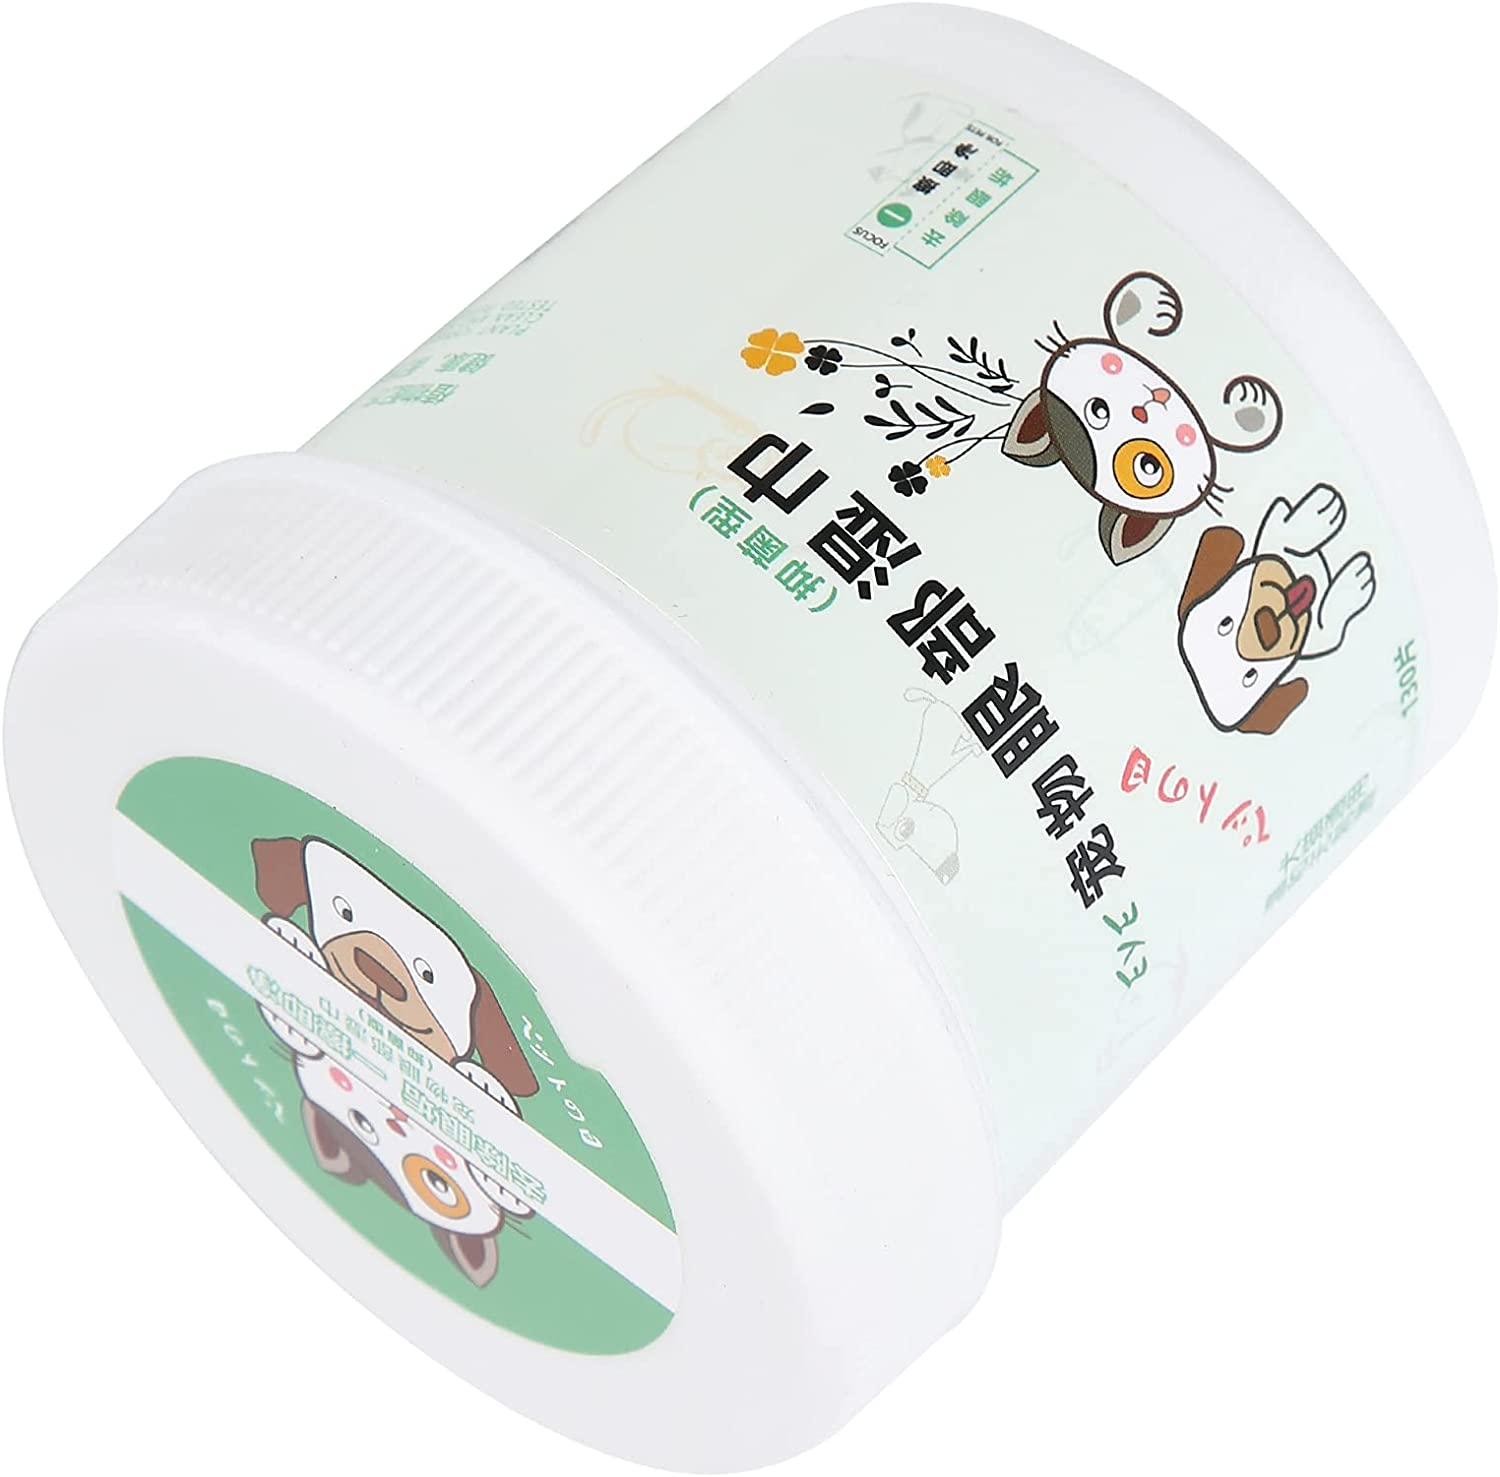 sale Jacksing Cleaning Popular products Wipes Portable Gentle Pet Tissue Wet